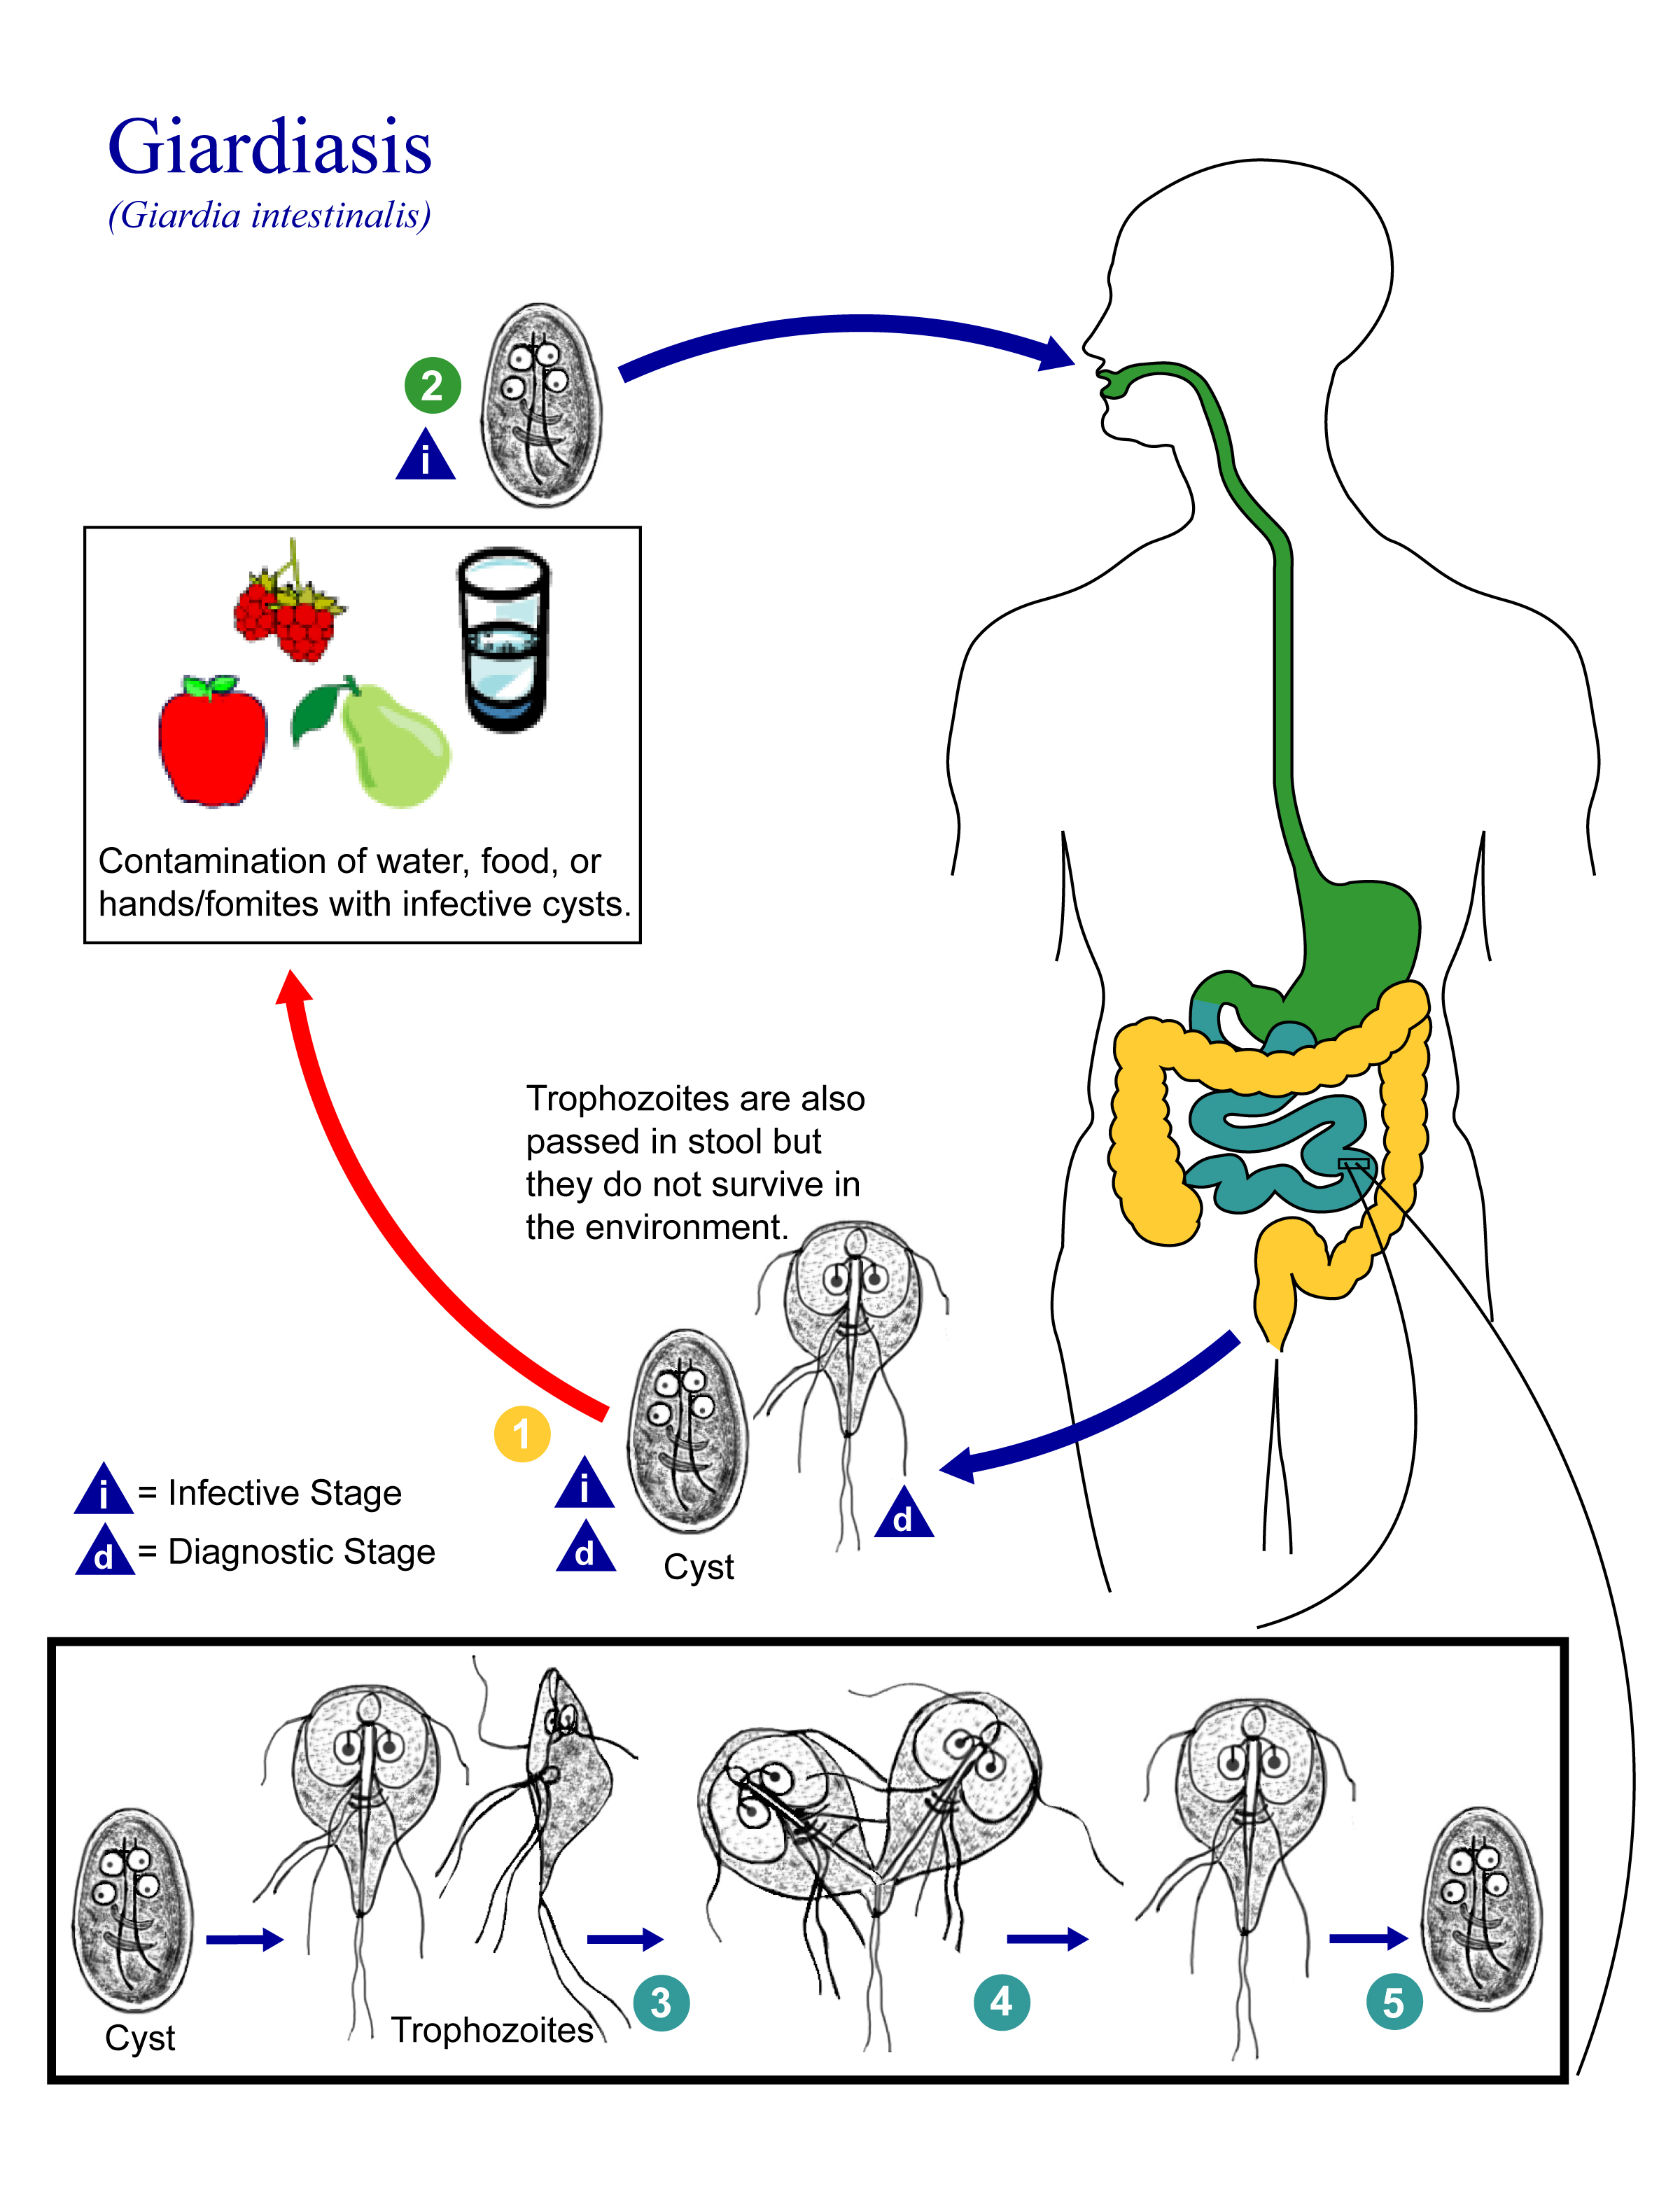 Graphic illustration depicting the Giardiasis cycle in humans